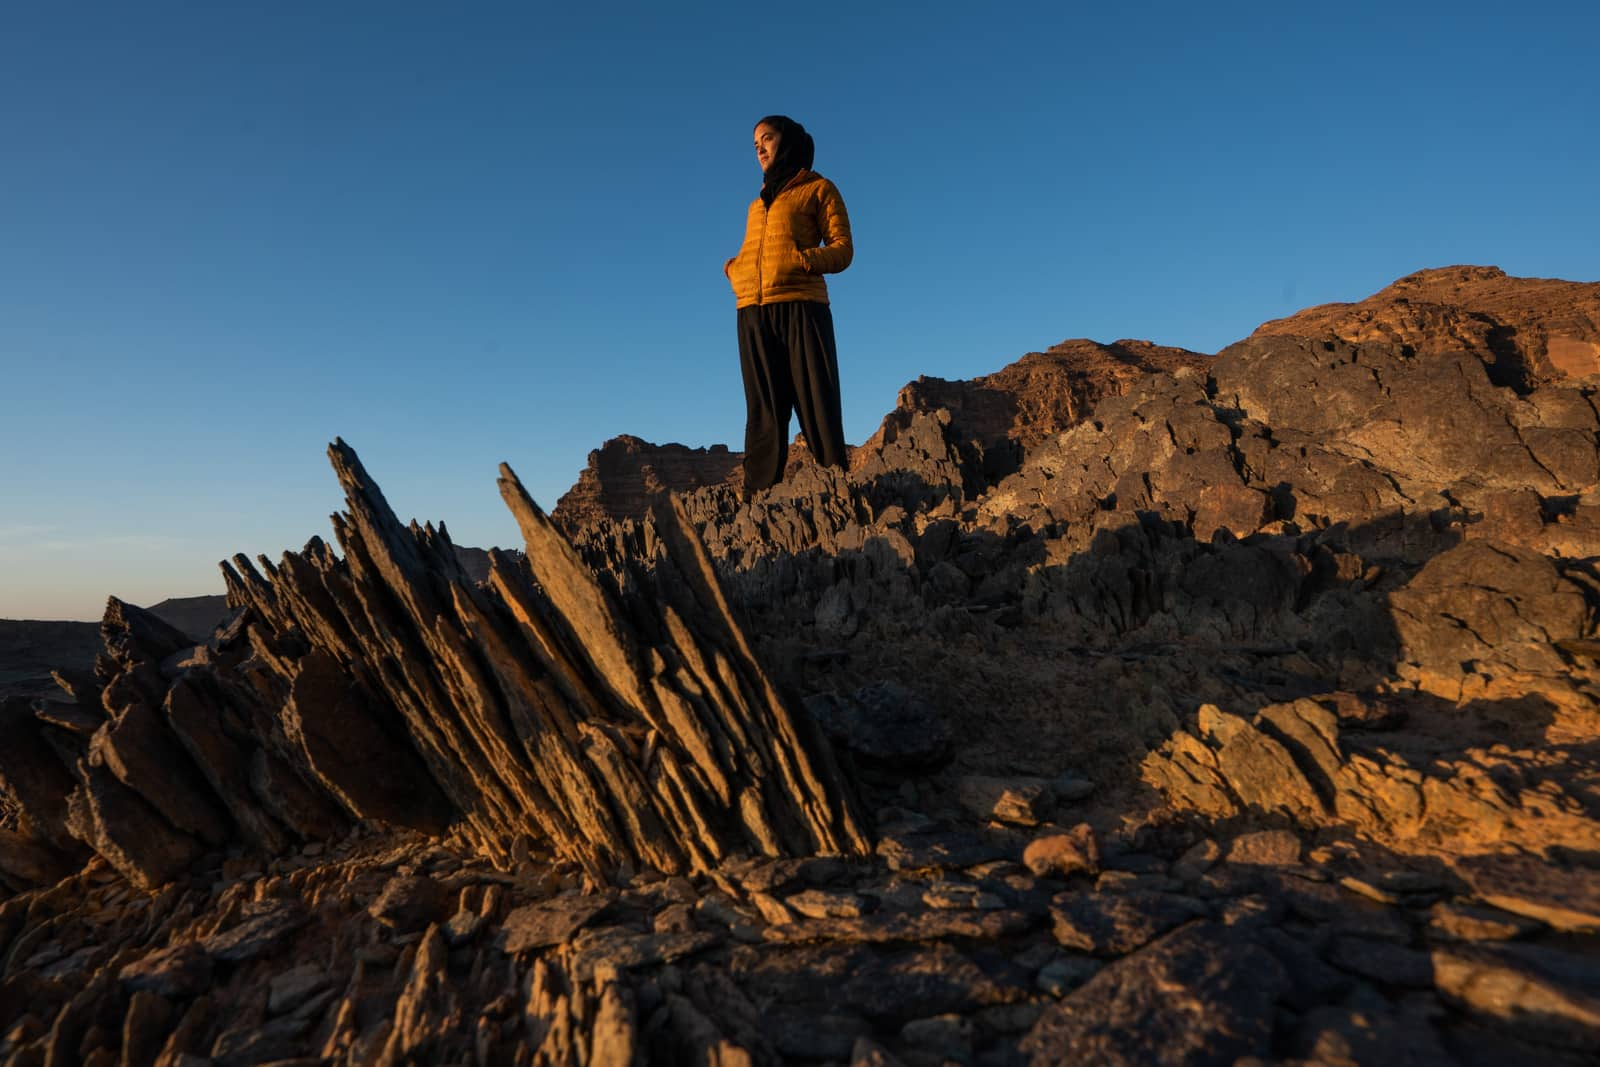 Female traveler in Saudi Arabia watching a sunrise over mountains in Najran